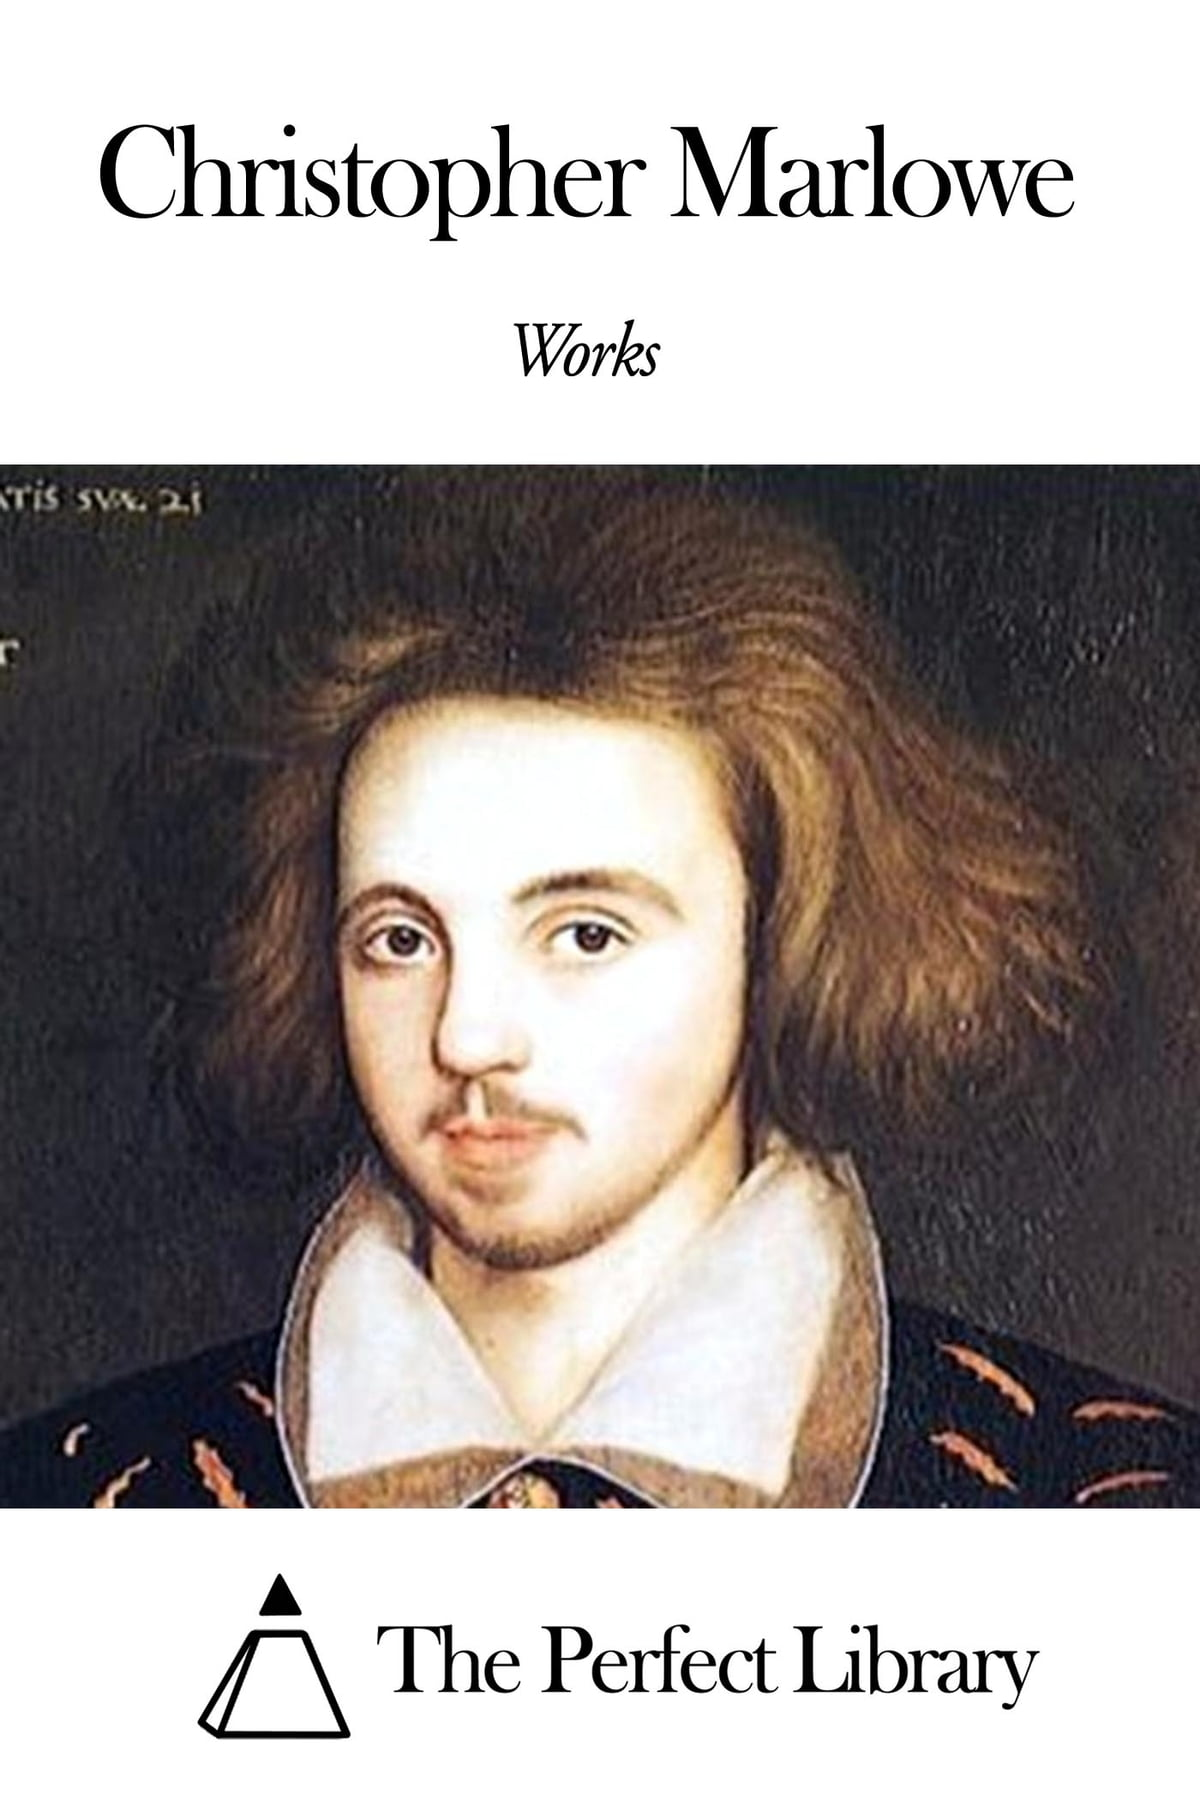 Christopher Marlowe photo #8120, Christopher Marlowe image